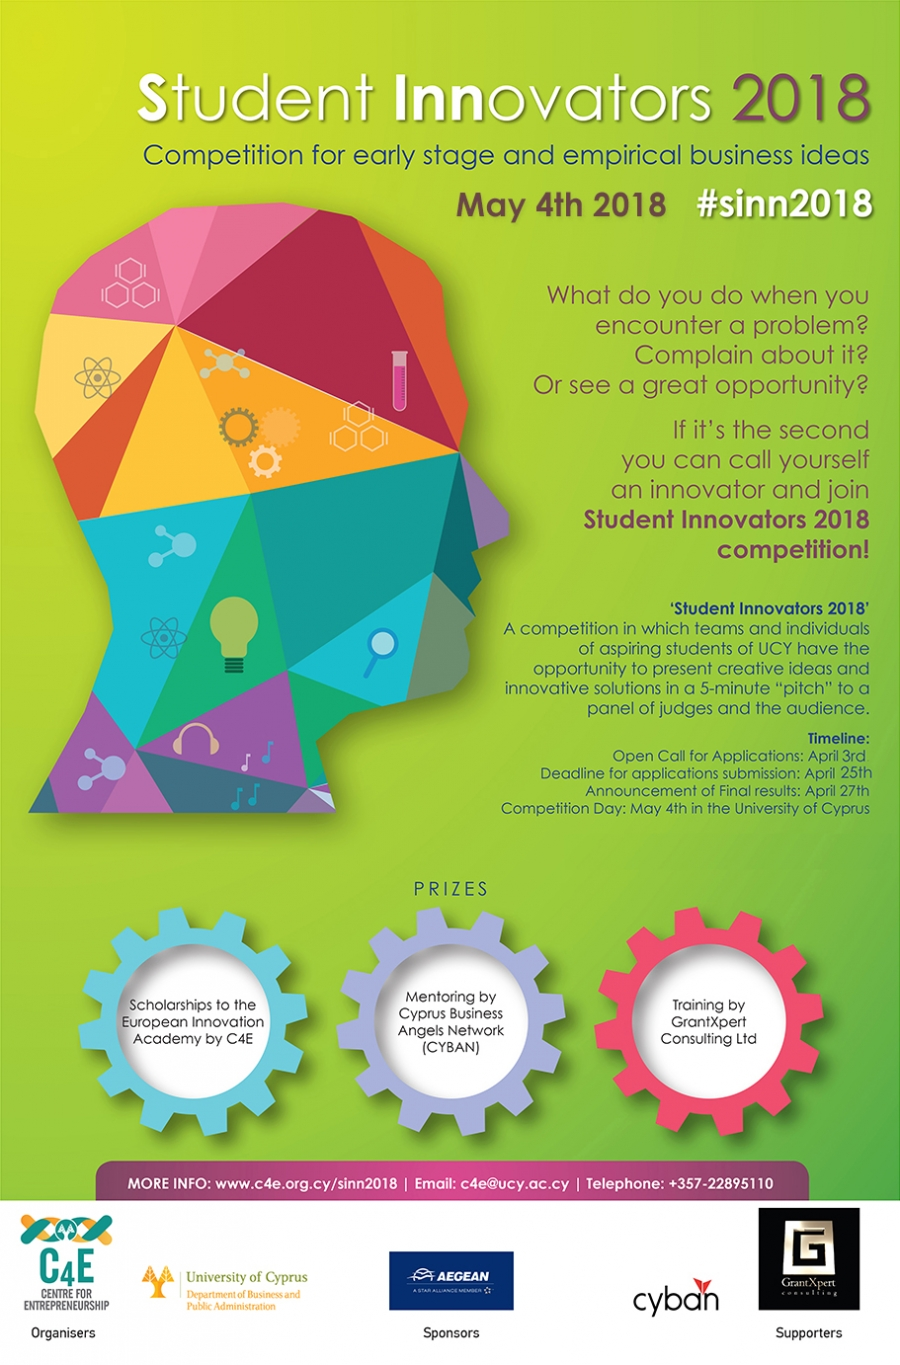 [04 May] Student Innovators Competition 2018